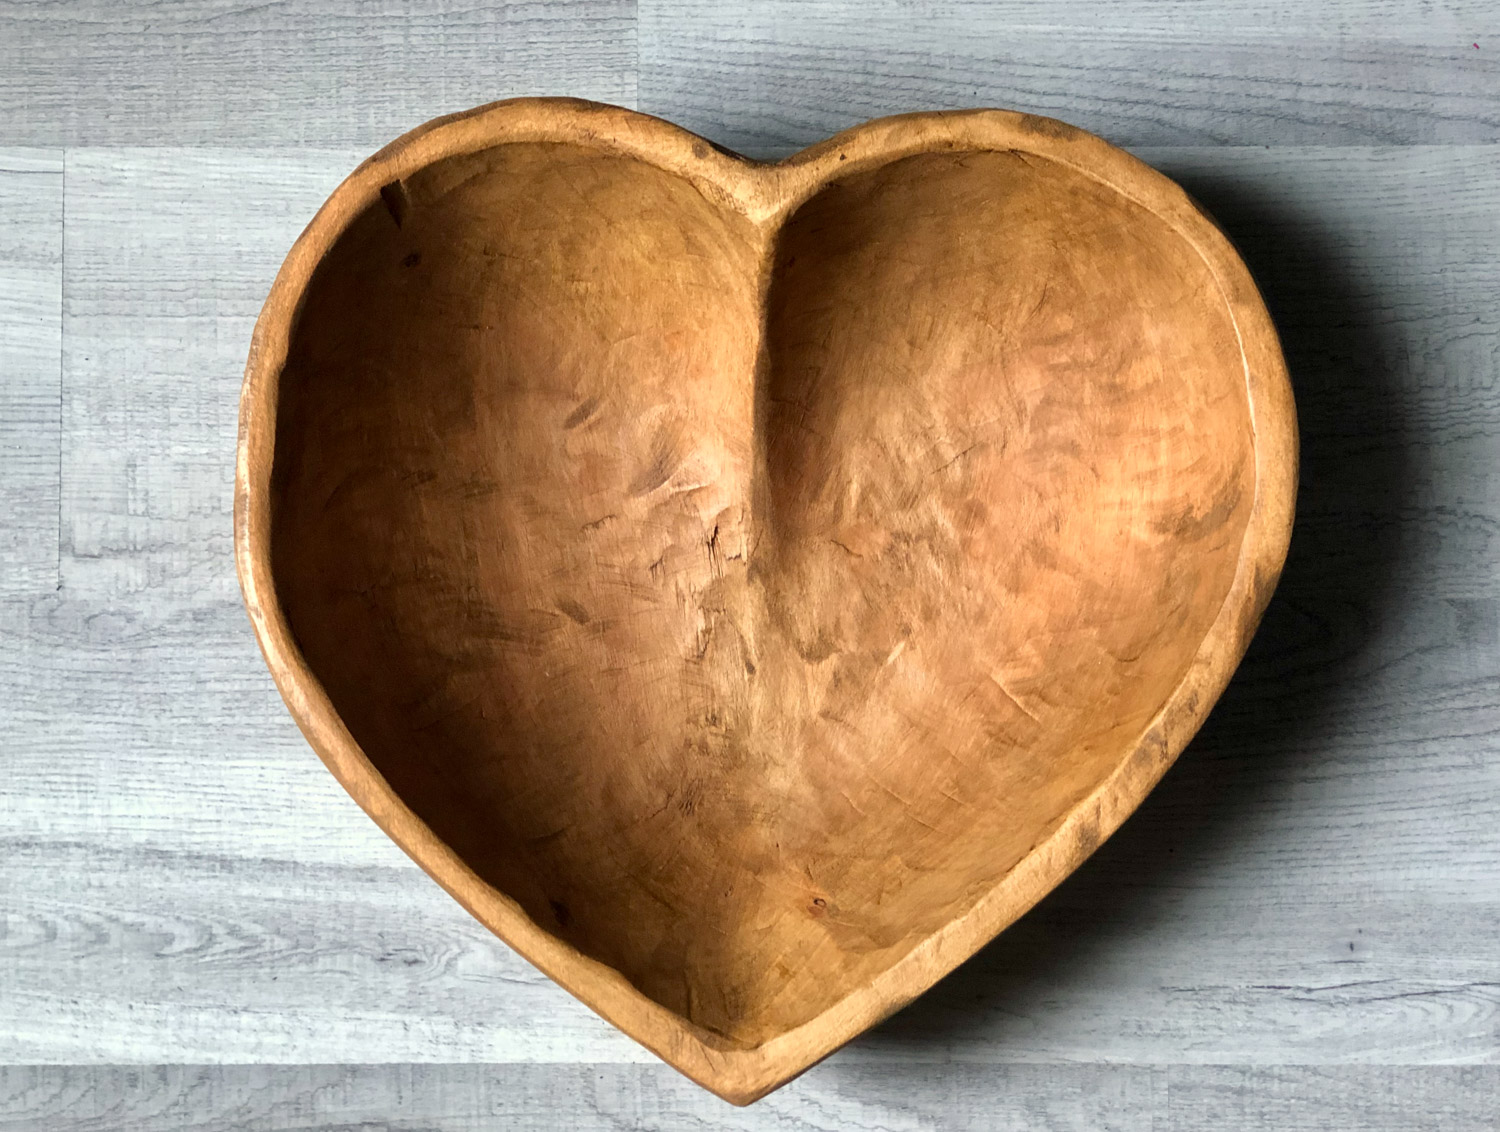 Wooden Heart Bowl.jpg